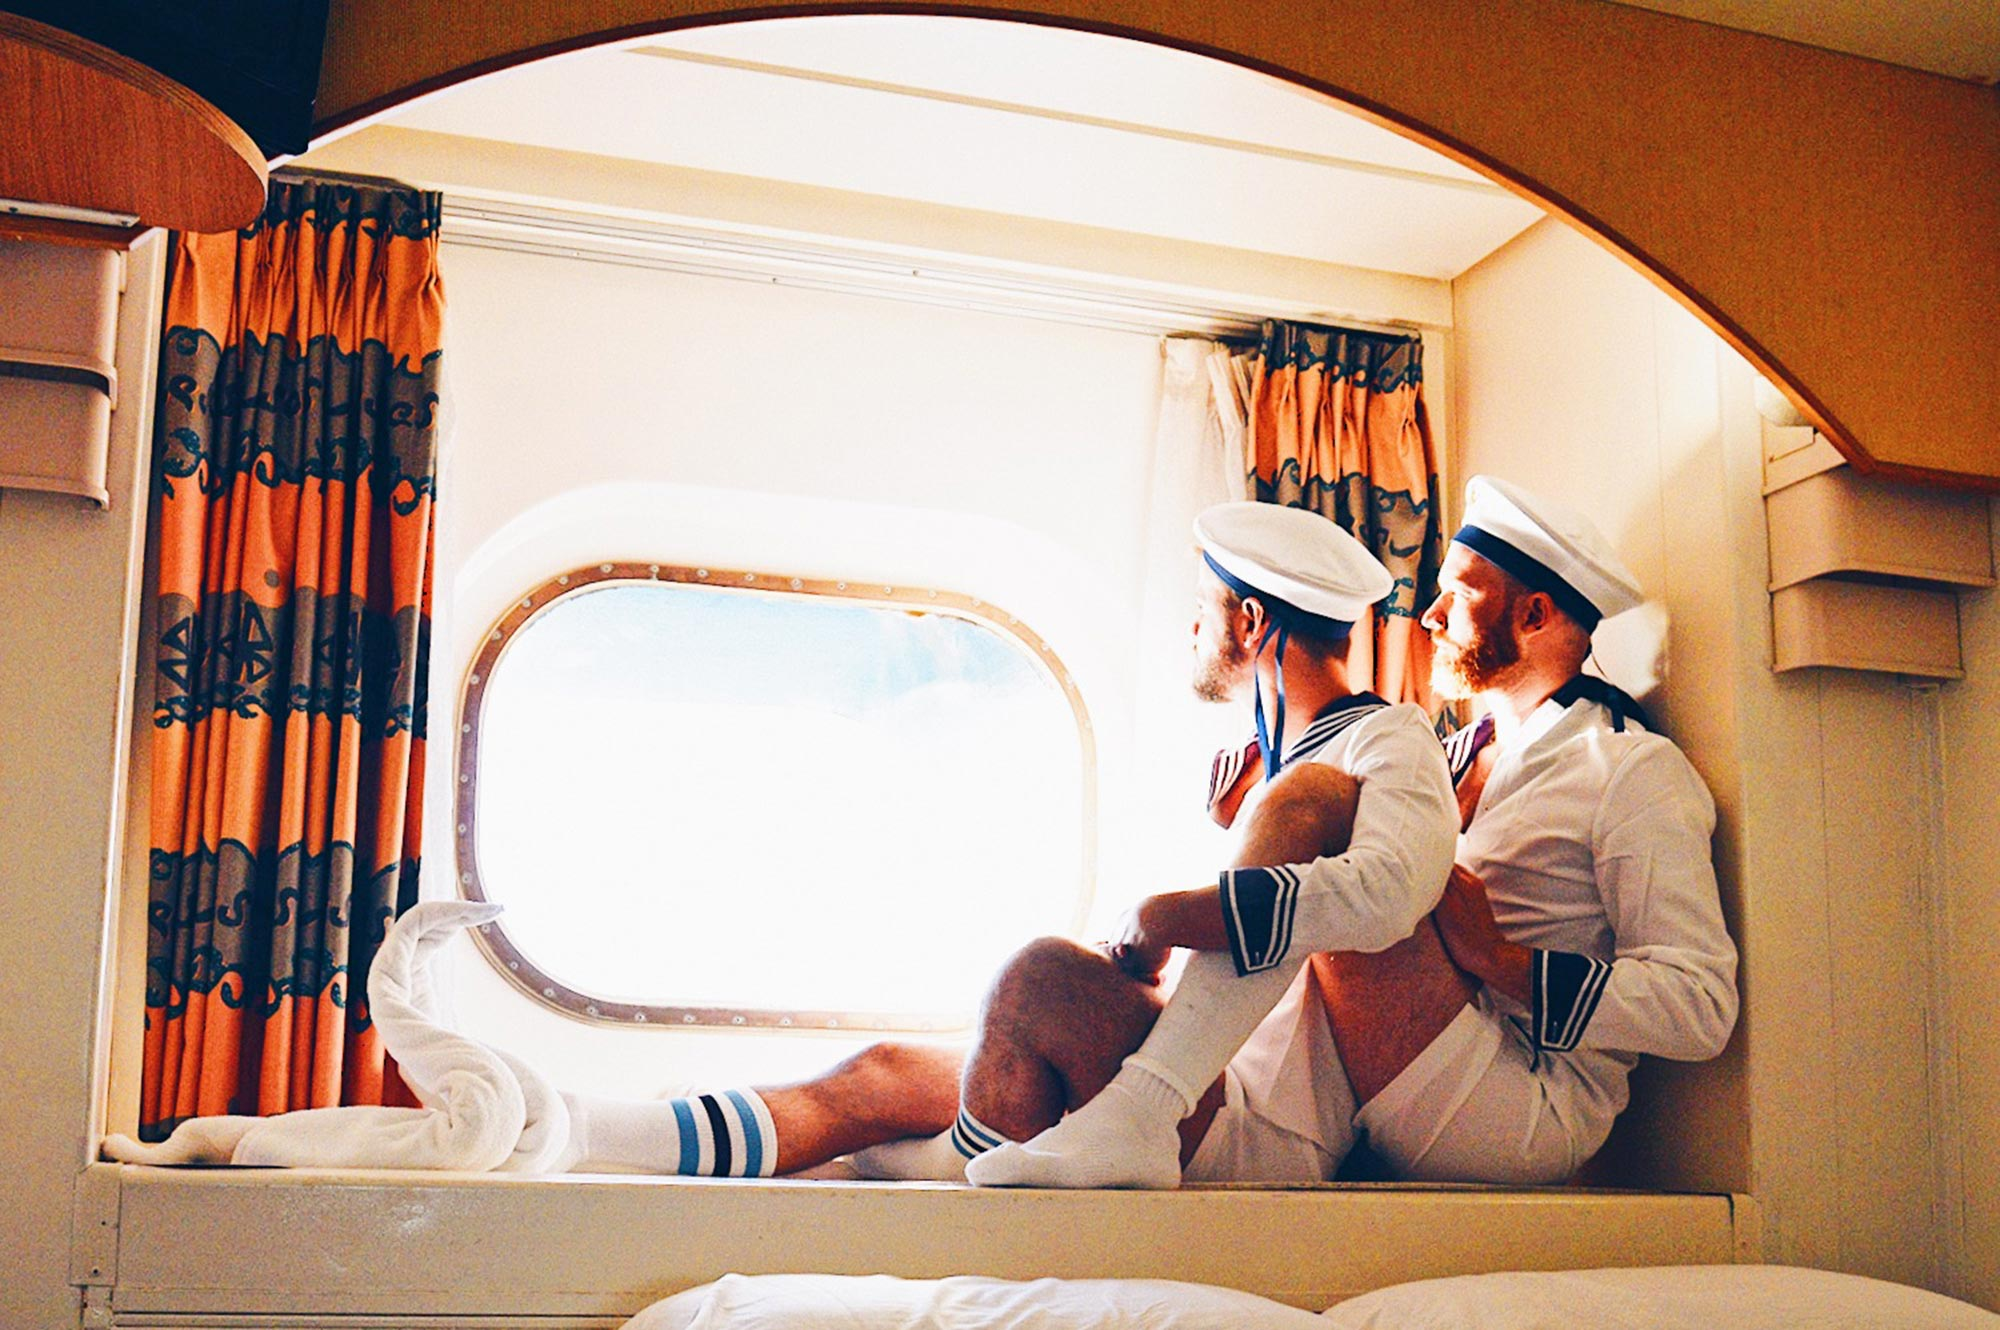 Tips European Gay Cruise Gay Couple Travel Blogger Karl & Daan Enjoying The Cruise view | Gay Men Tips La Demence The Cruise © CoupleofMen.com